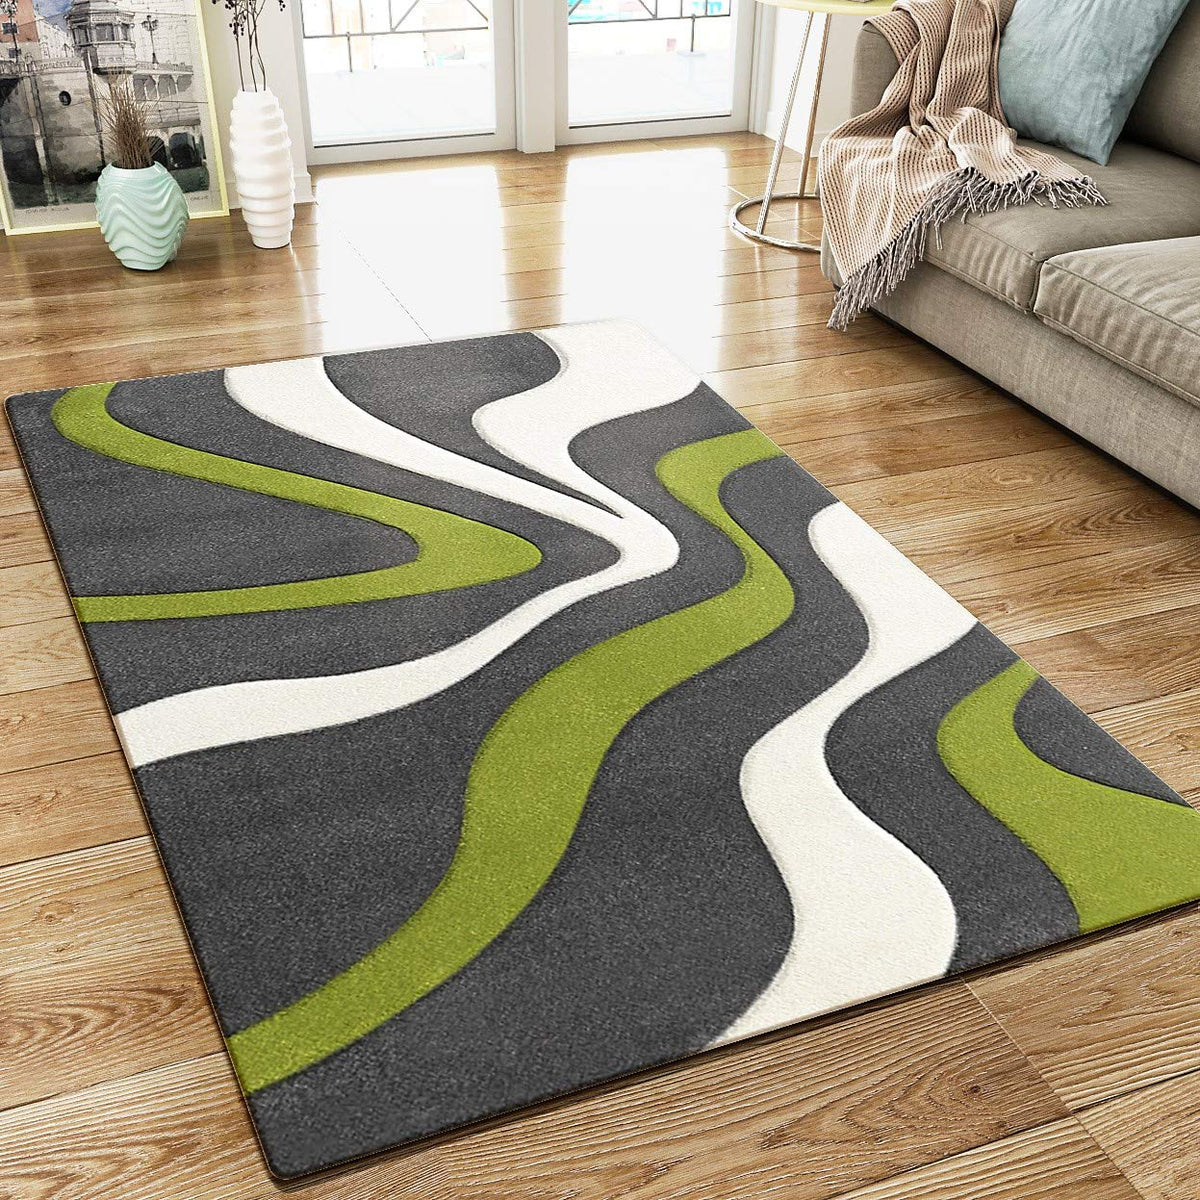 Abstract Rug Grey Green White Wave Design Contour Cut Woven Low Pile C Xrugs